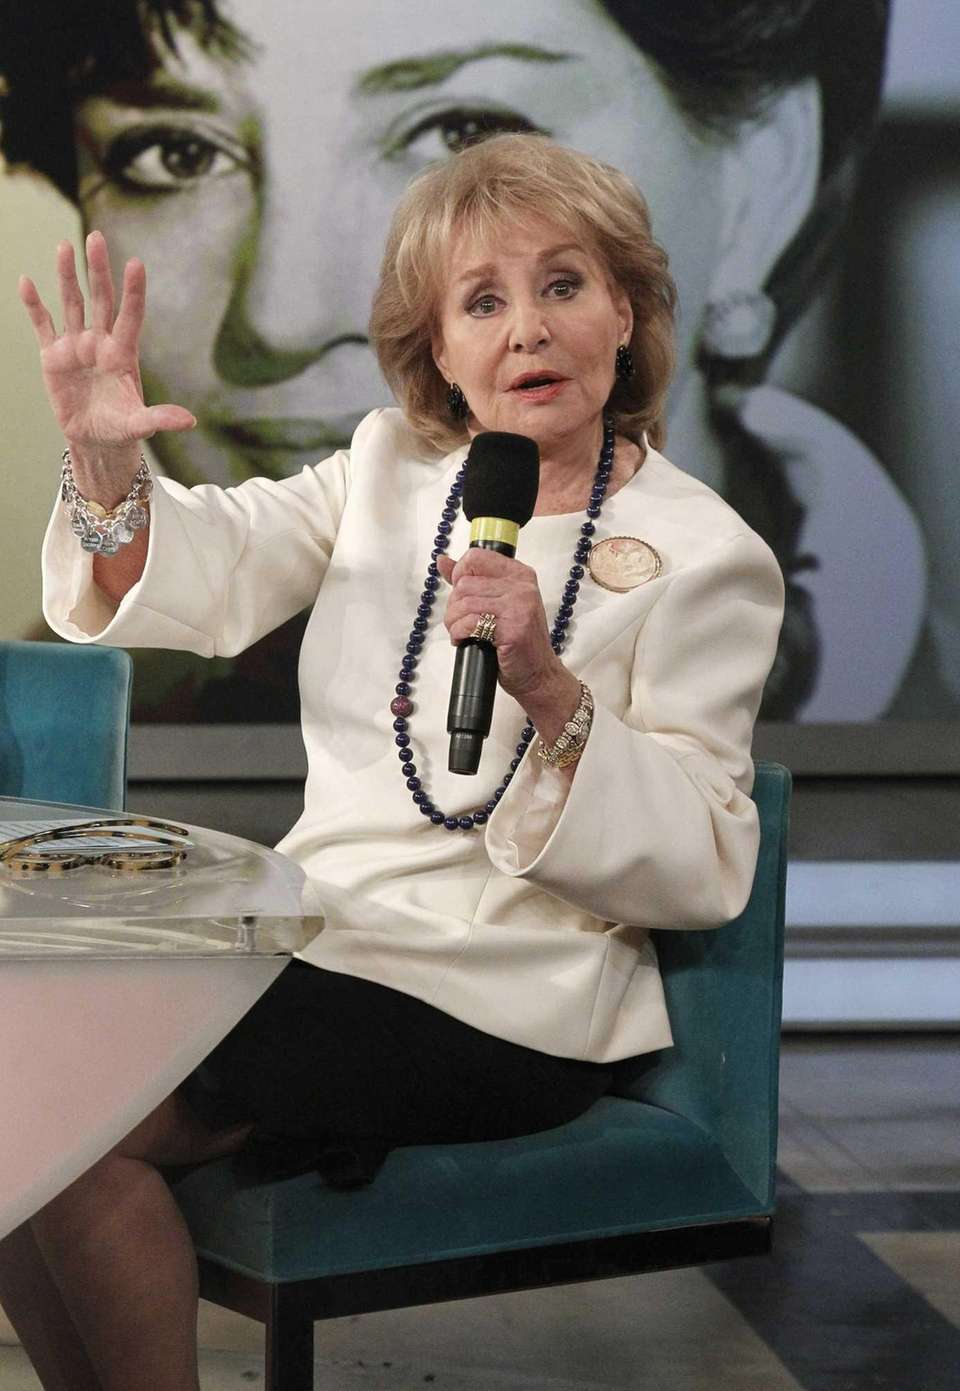 Barbara Walters remained on